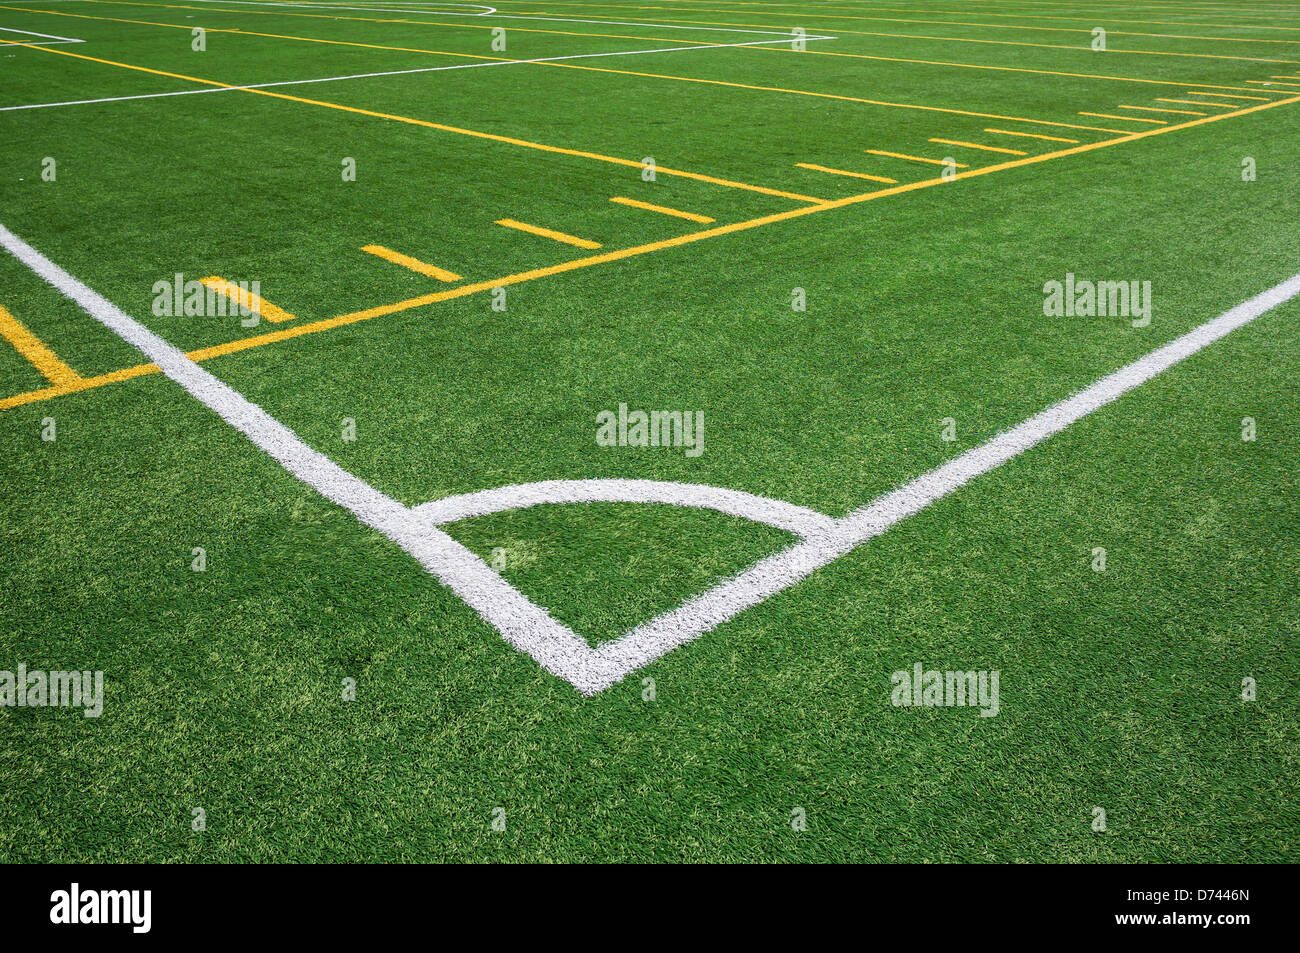 Artificial turf soccer field Fake Grass Lines On Football And Soccer Artificial Turf Field Lines On Football And Soccer Artificial Turf Field Stock Photo